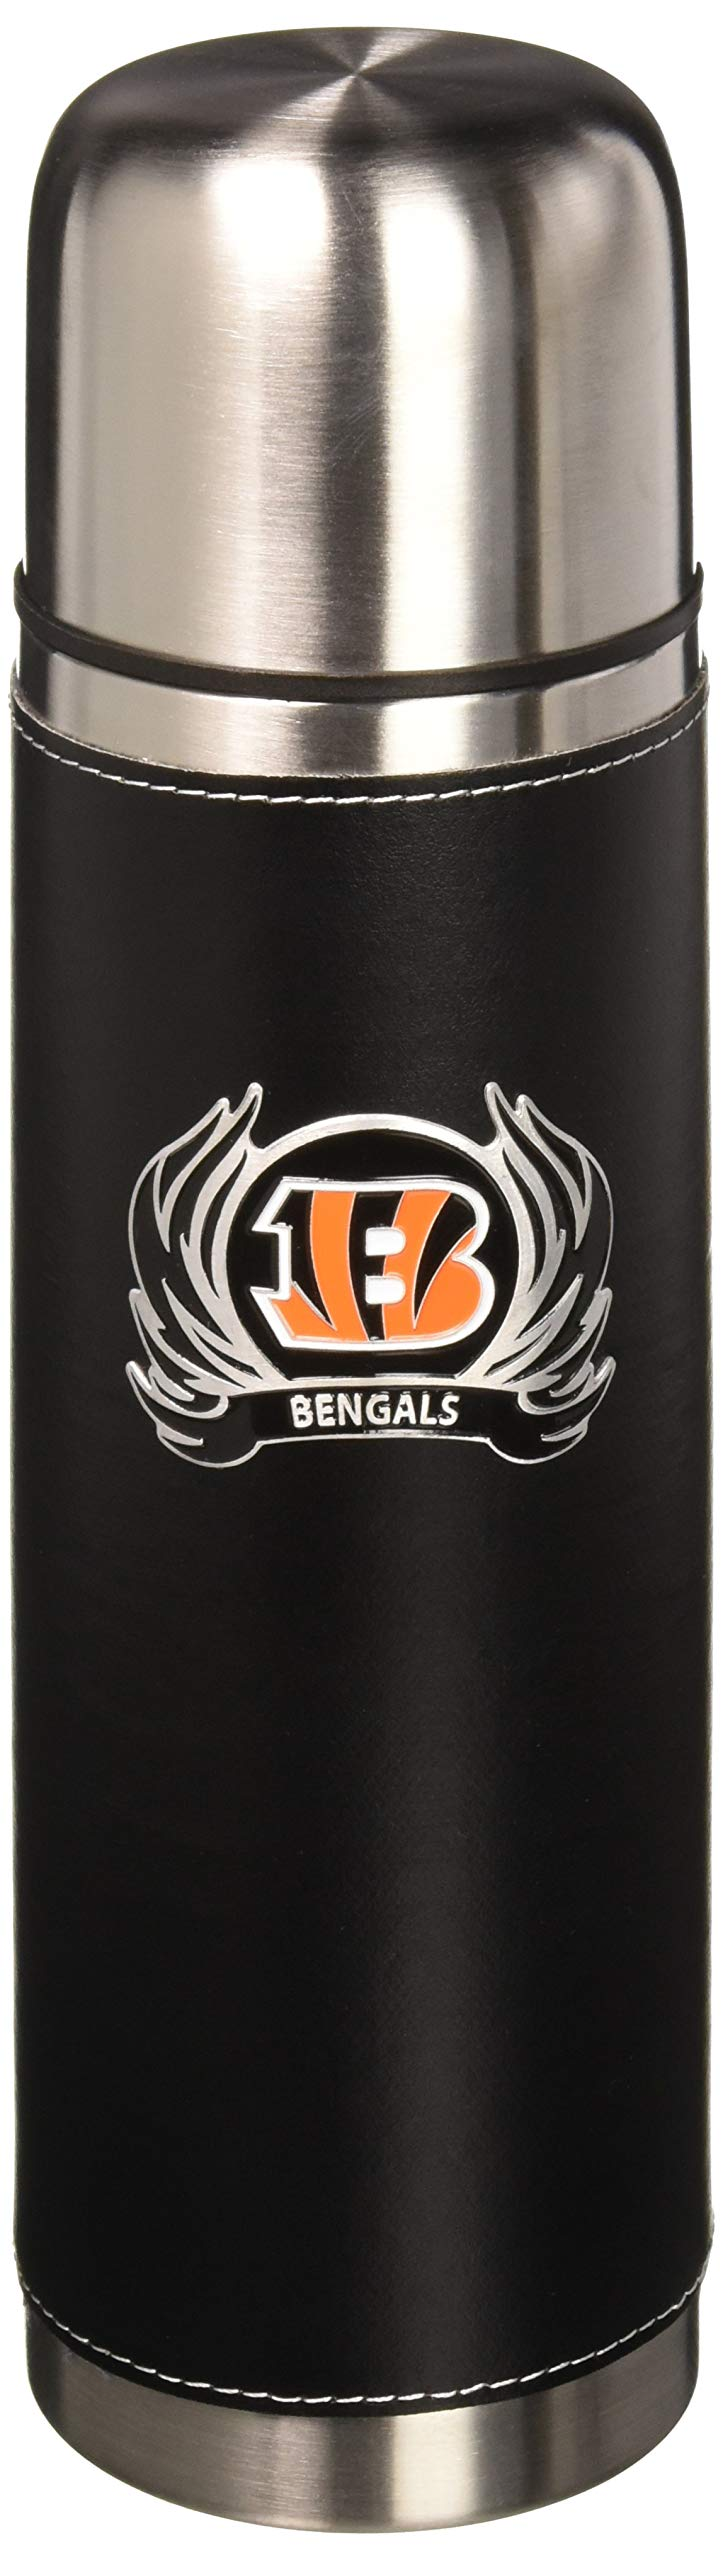 NFL Cincinnati Bengals Insulated Thermos by Siskiyou